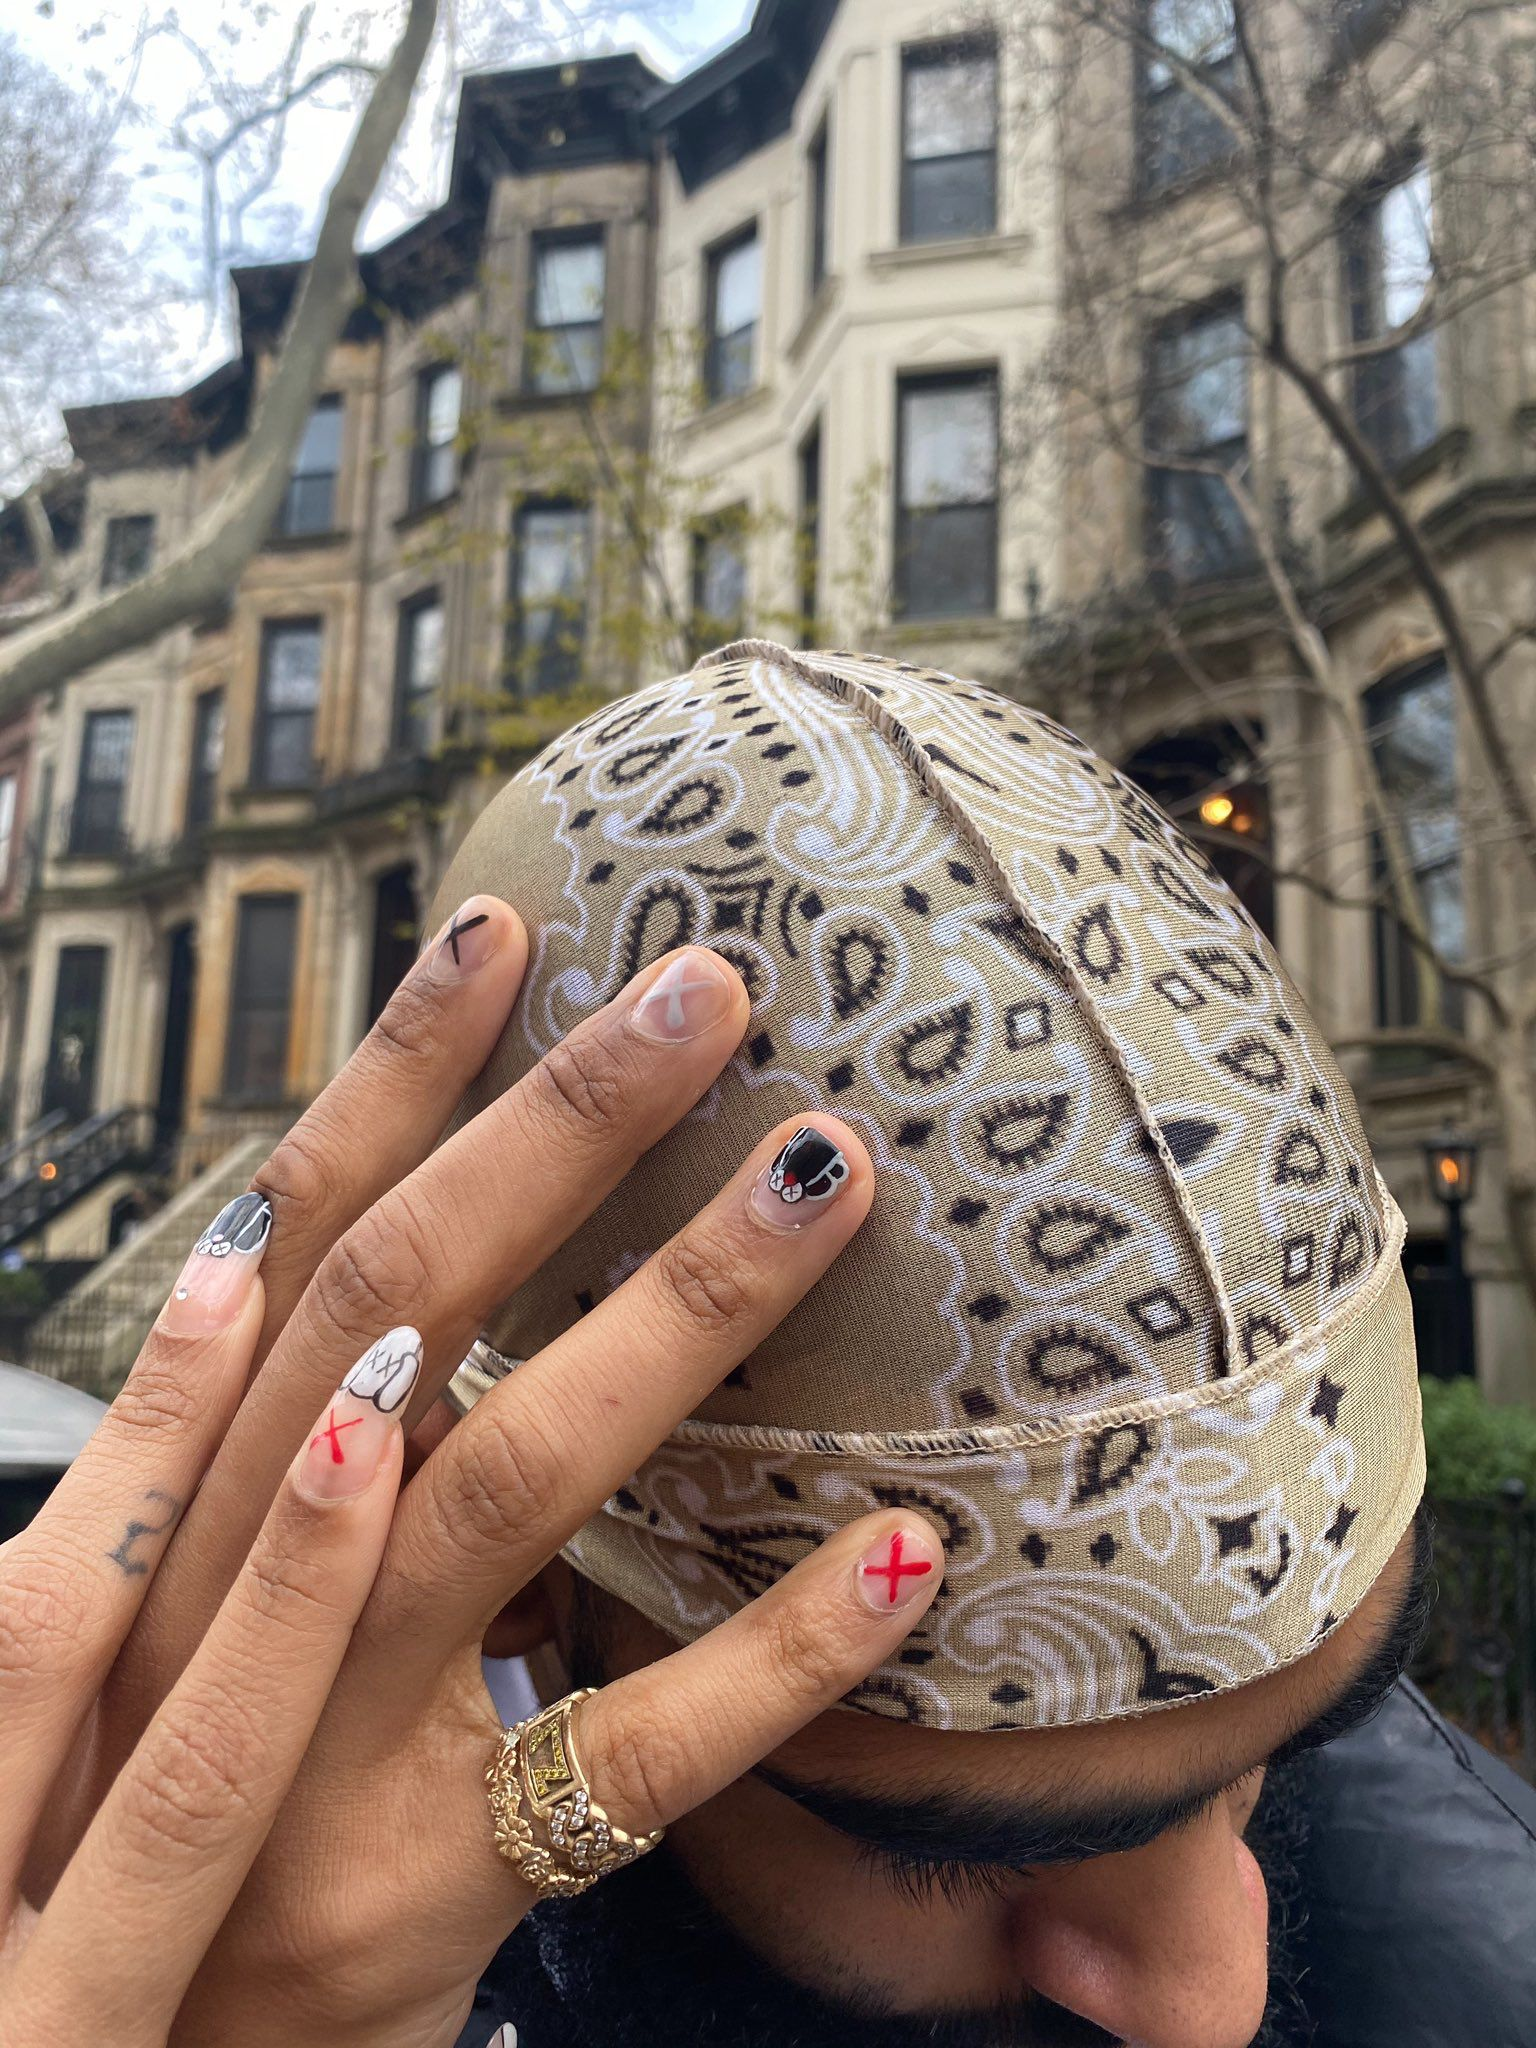 Pin by naè! 👼🏽 on nails. Mens nails, How to do nails, Nails